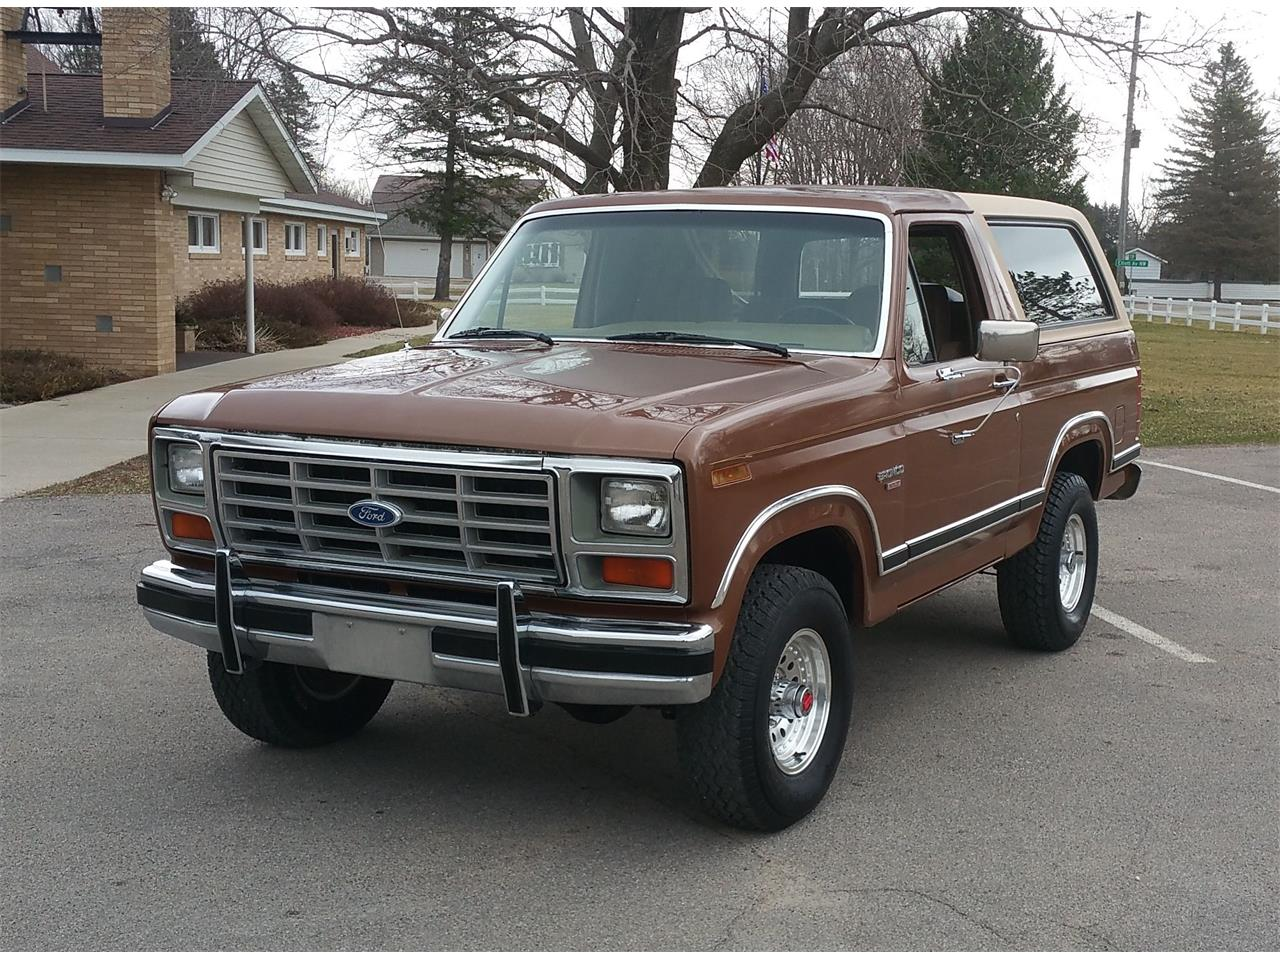 Large picture of 86 bronco kufx